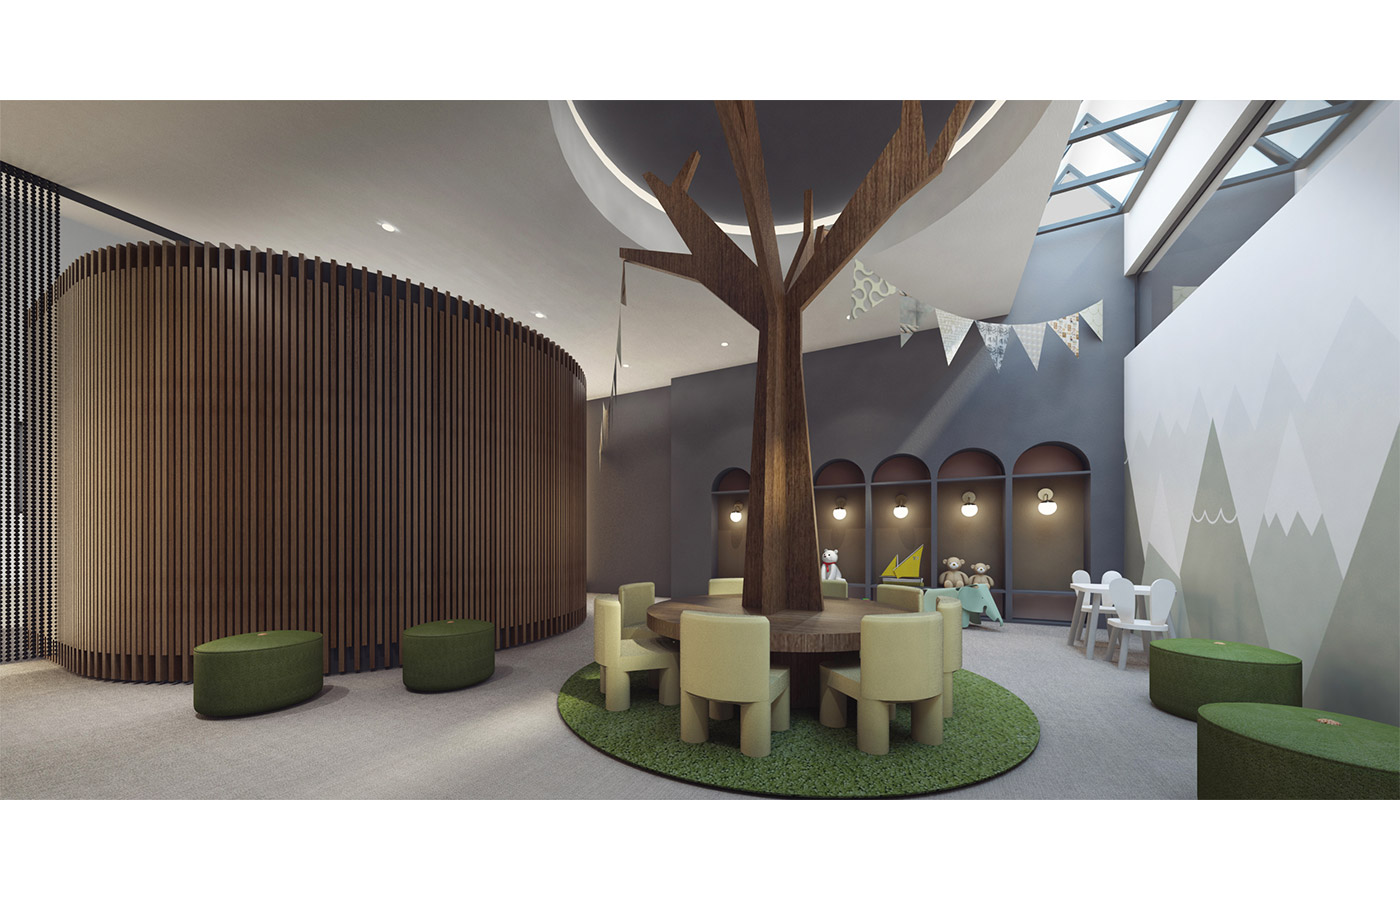 Rendering of children's playroom at 260 Gold Street - StudiosC Architecture